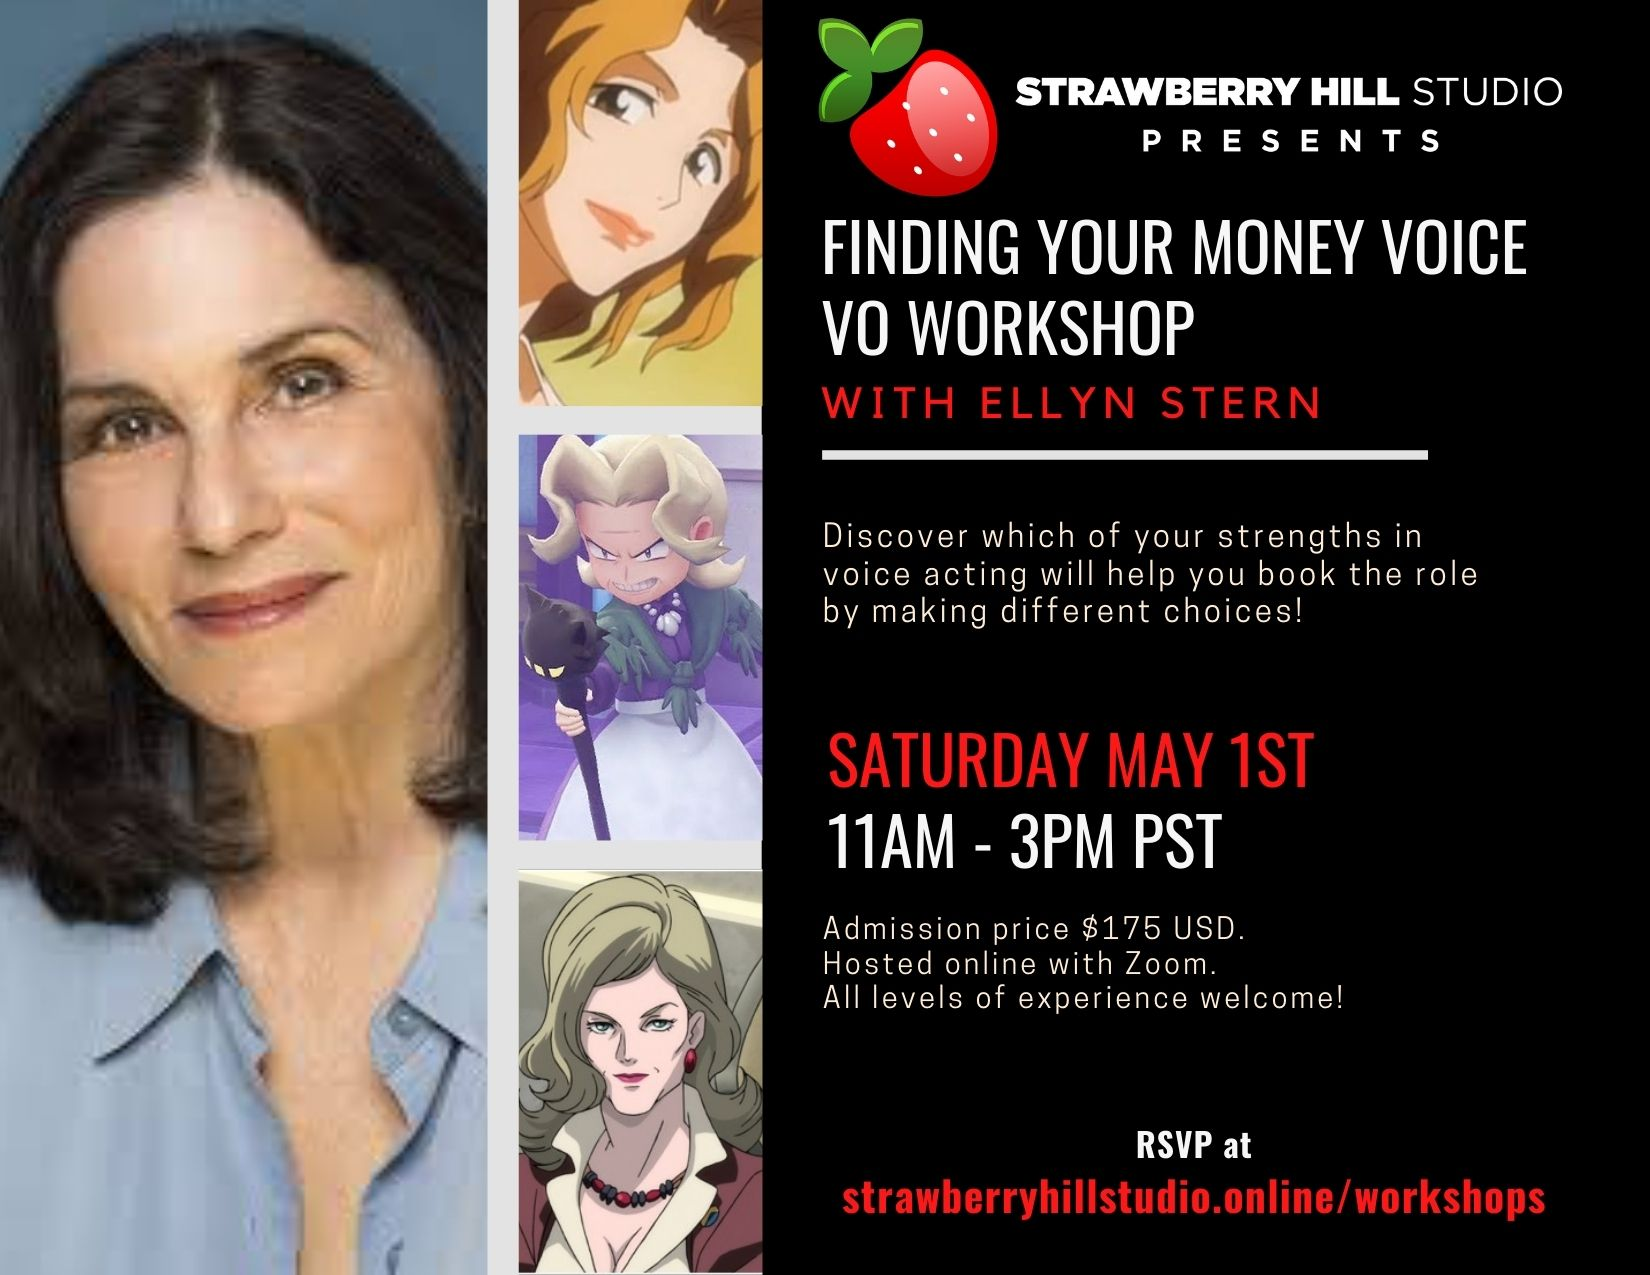 Finding Your Money Voice - VO Workshop w/ Ellyn Stern